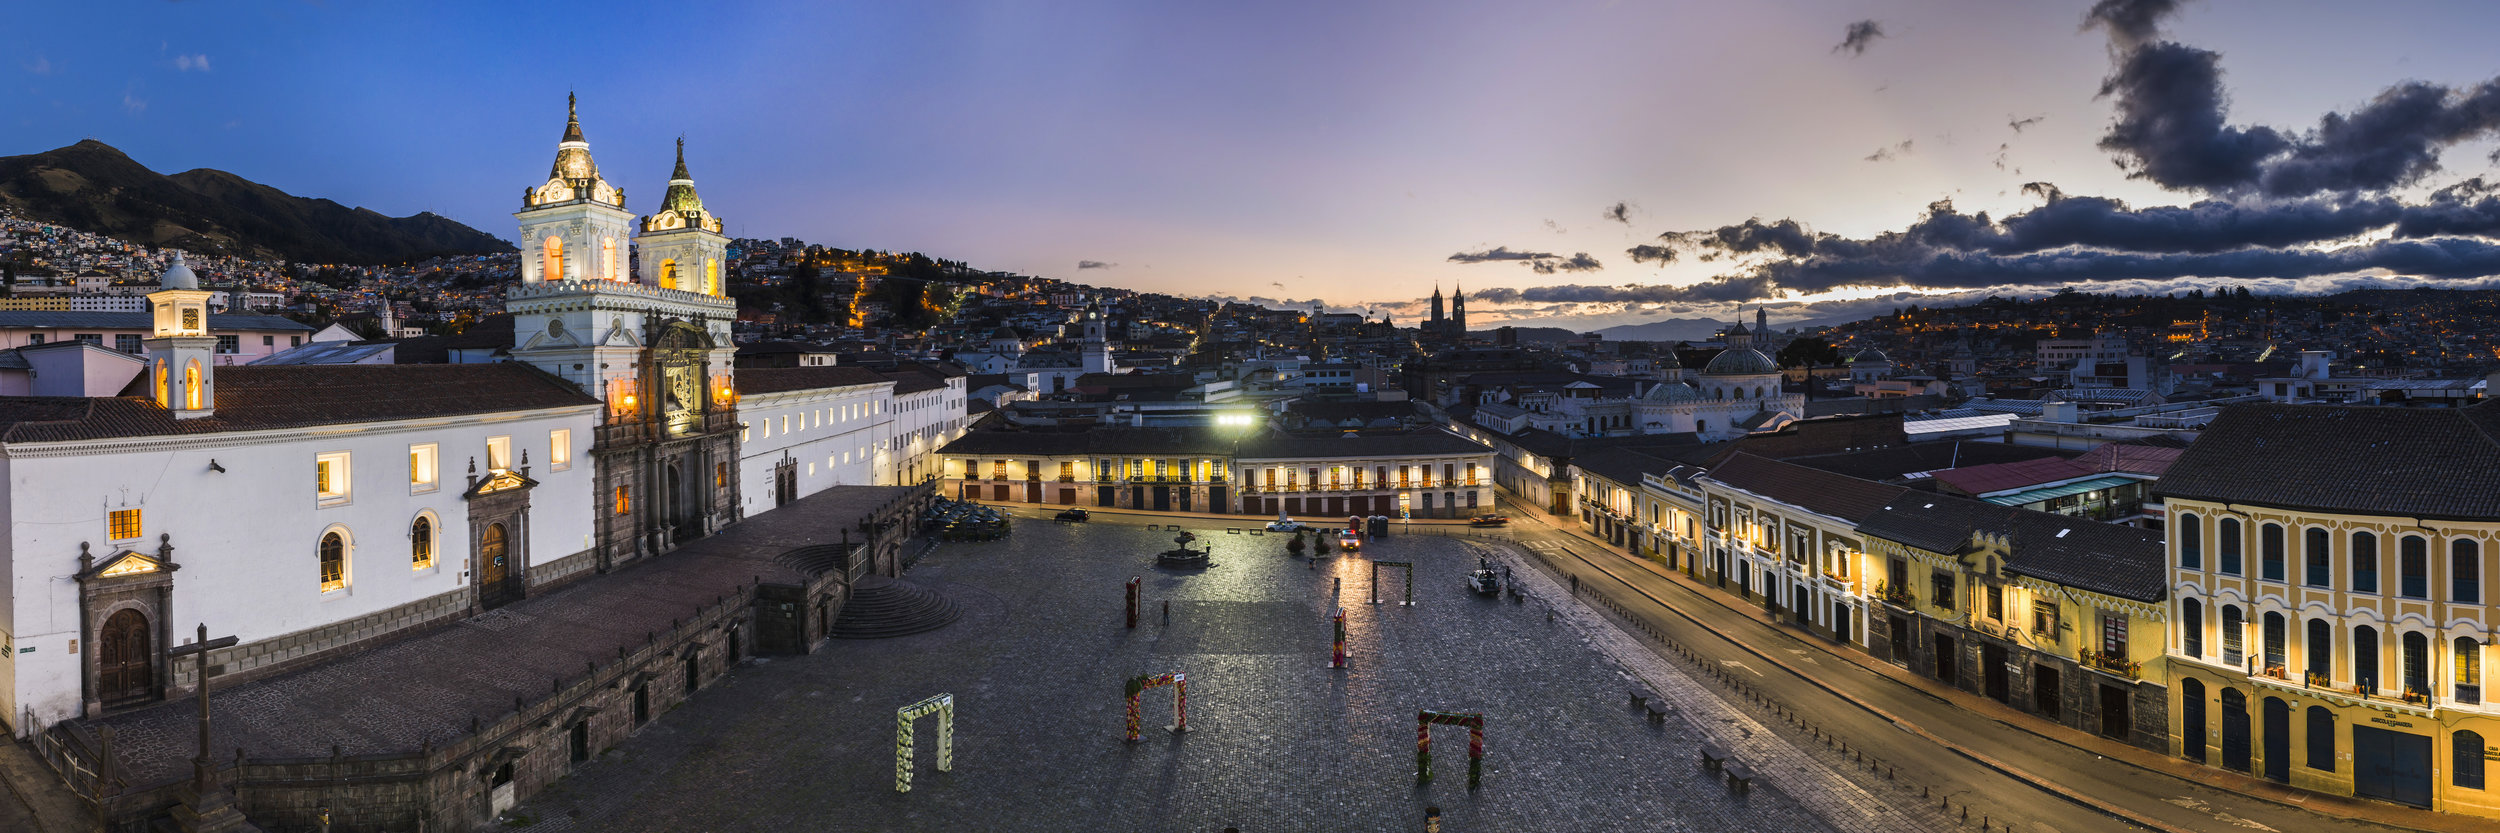 Plaza de San Francisco and Church and Convent of San Francisco at night, Old City of Quito, Ecuador, South America